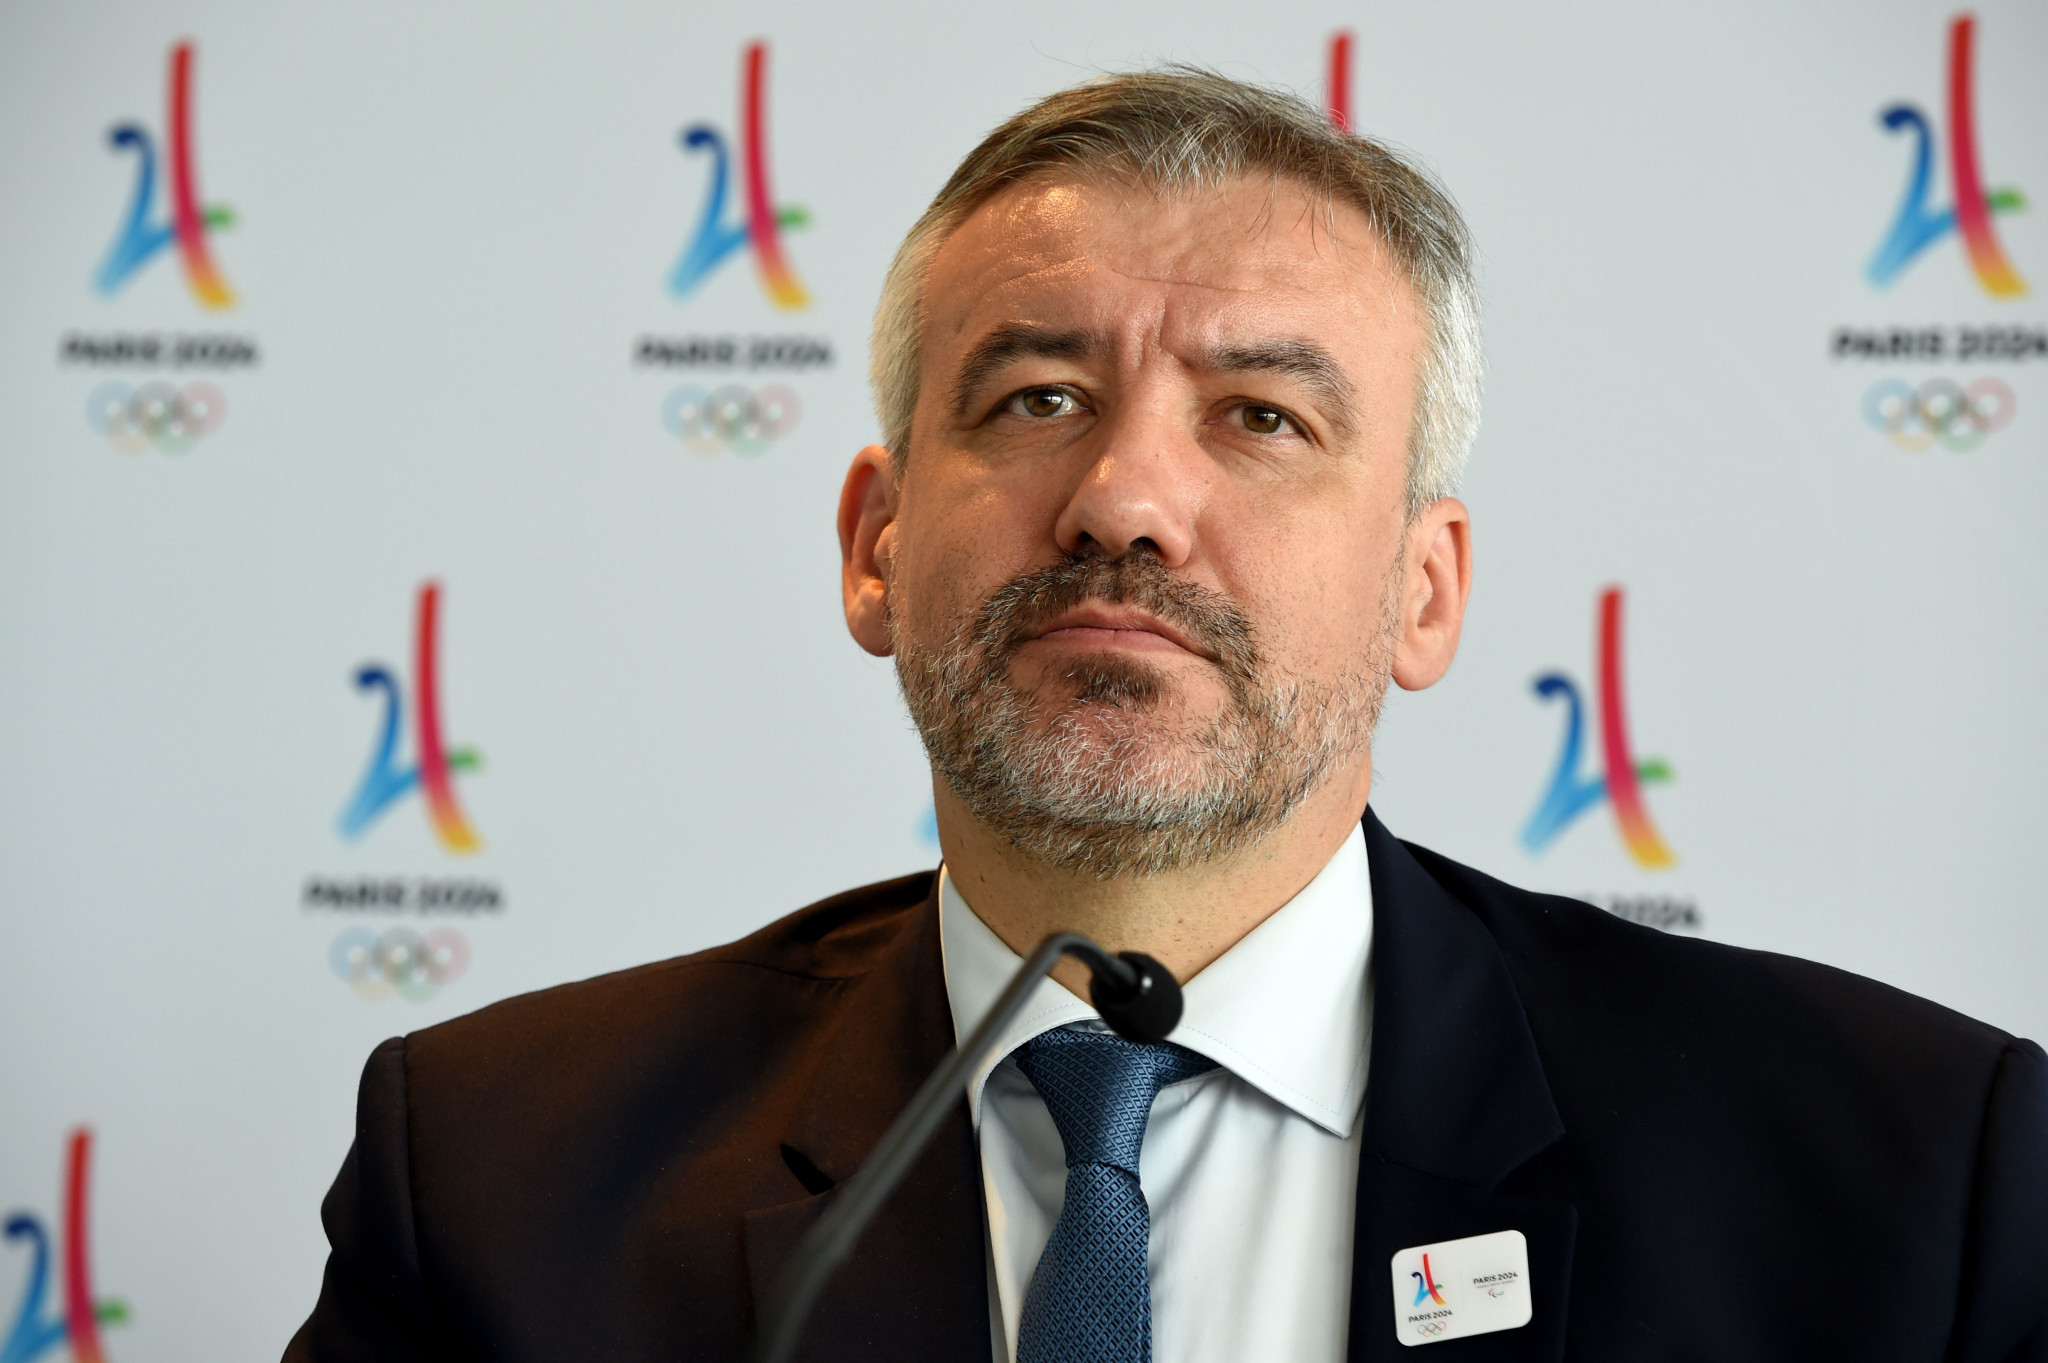 Paris 2024 welcomes certainty over weightlifting's inclusion after conditional status lifted